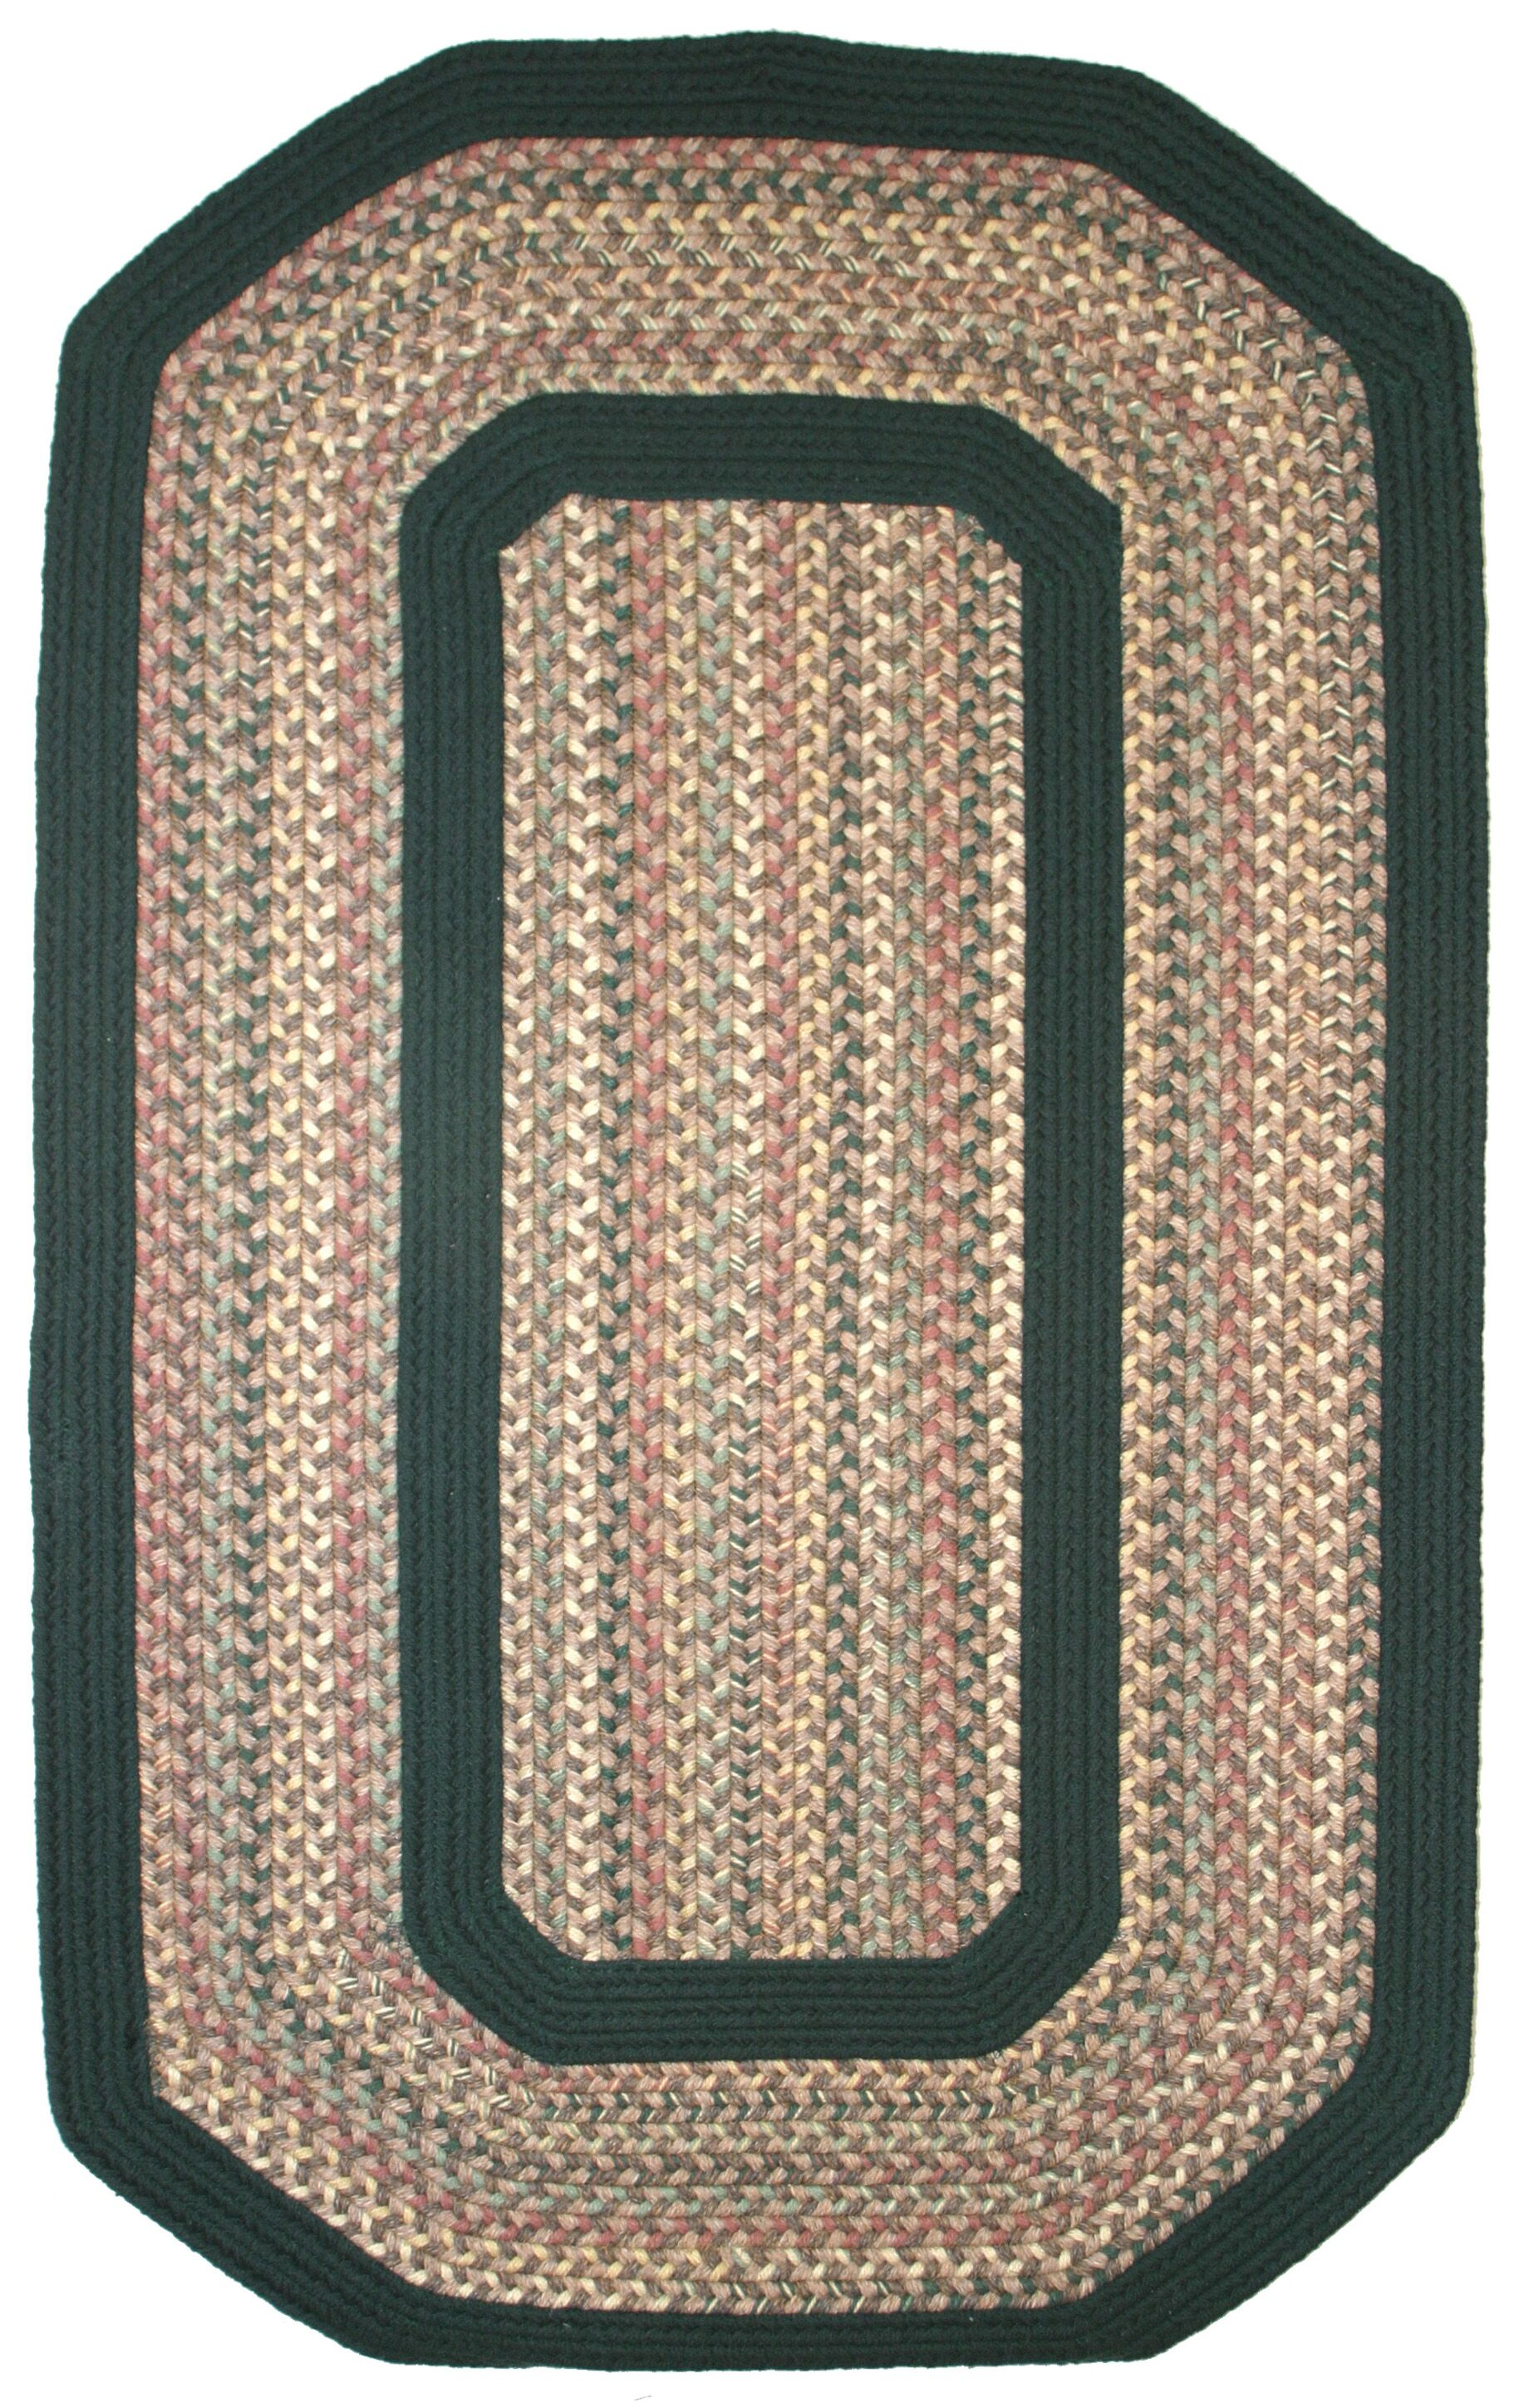 Pioneer Valley II Autumn Wheat with Dark Green Solids Multi Elongated Octagon Rug Rug Size: Elongated Octagon 4' x 6'